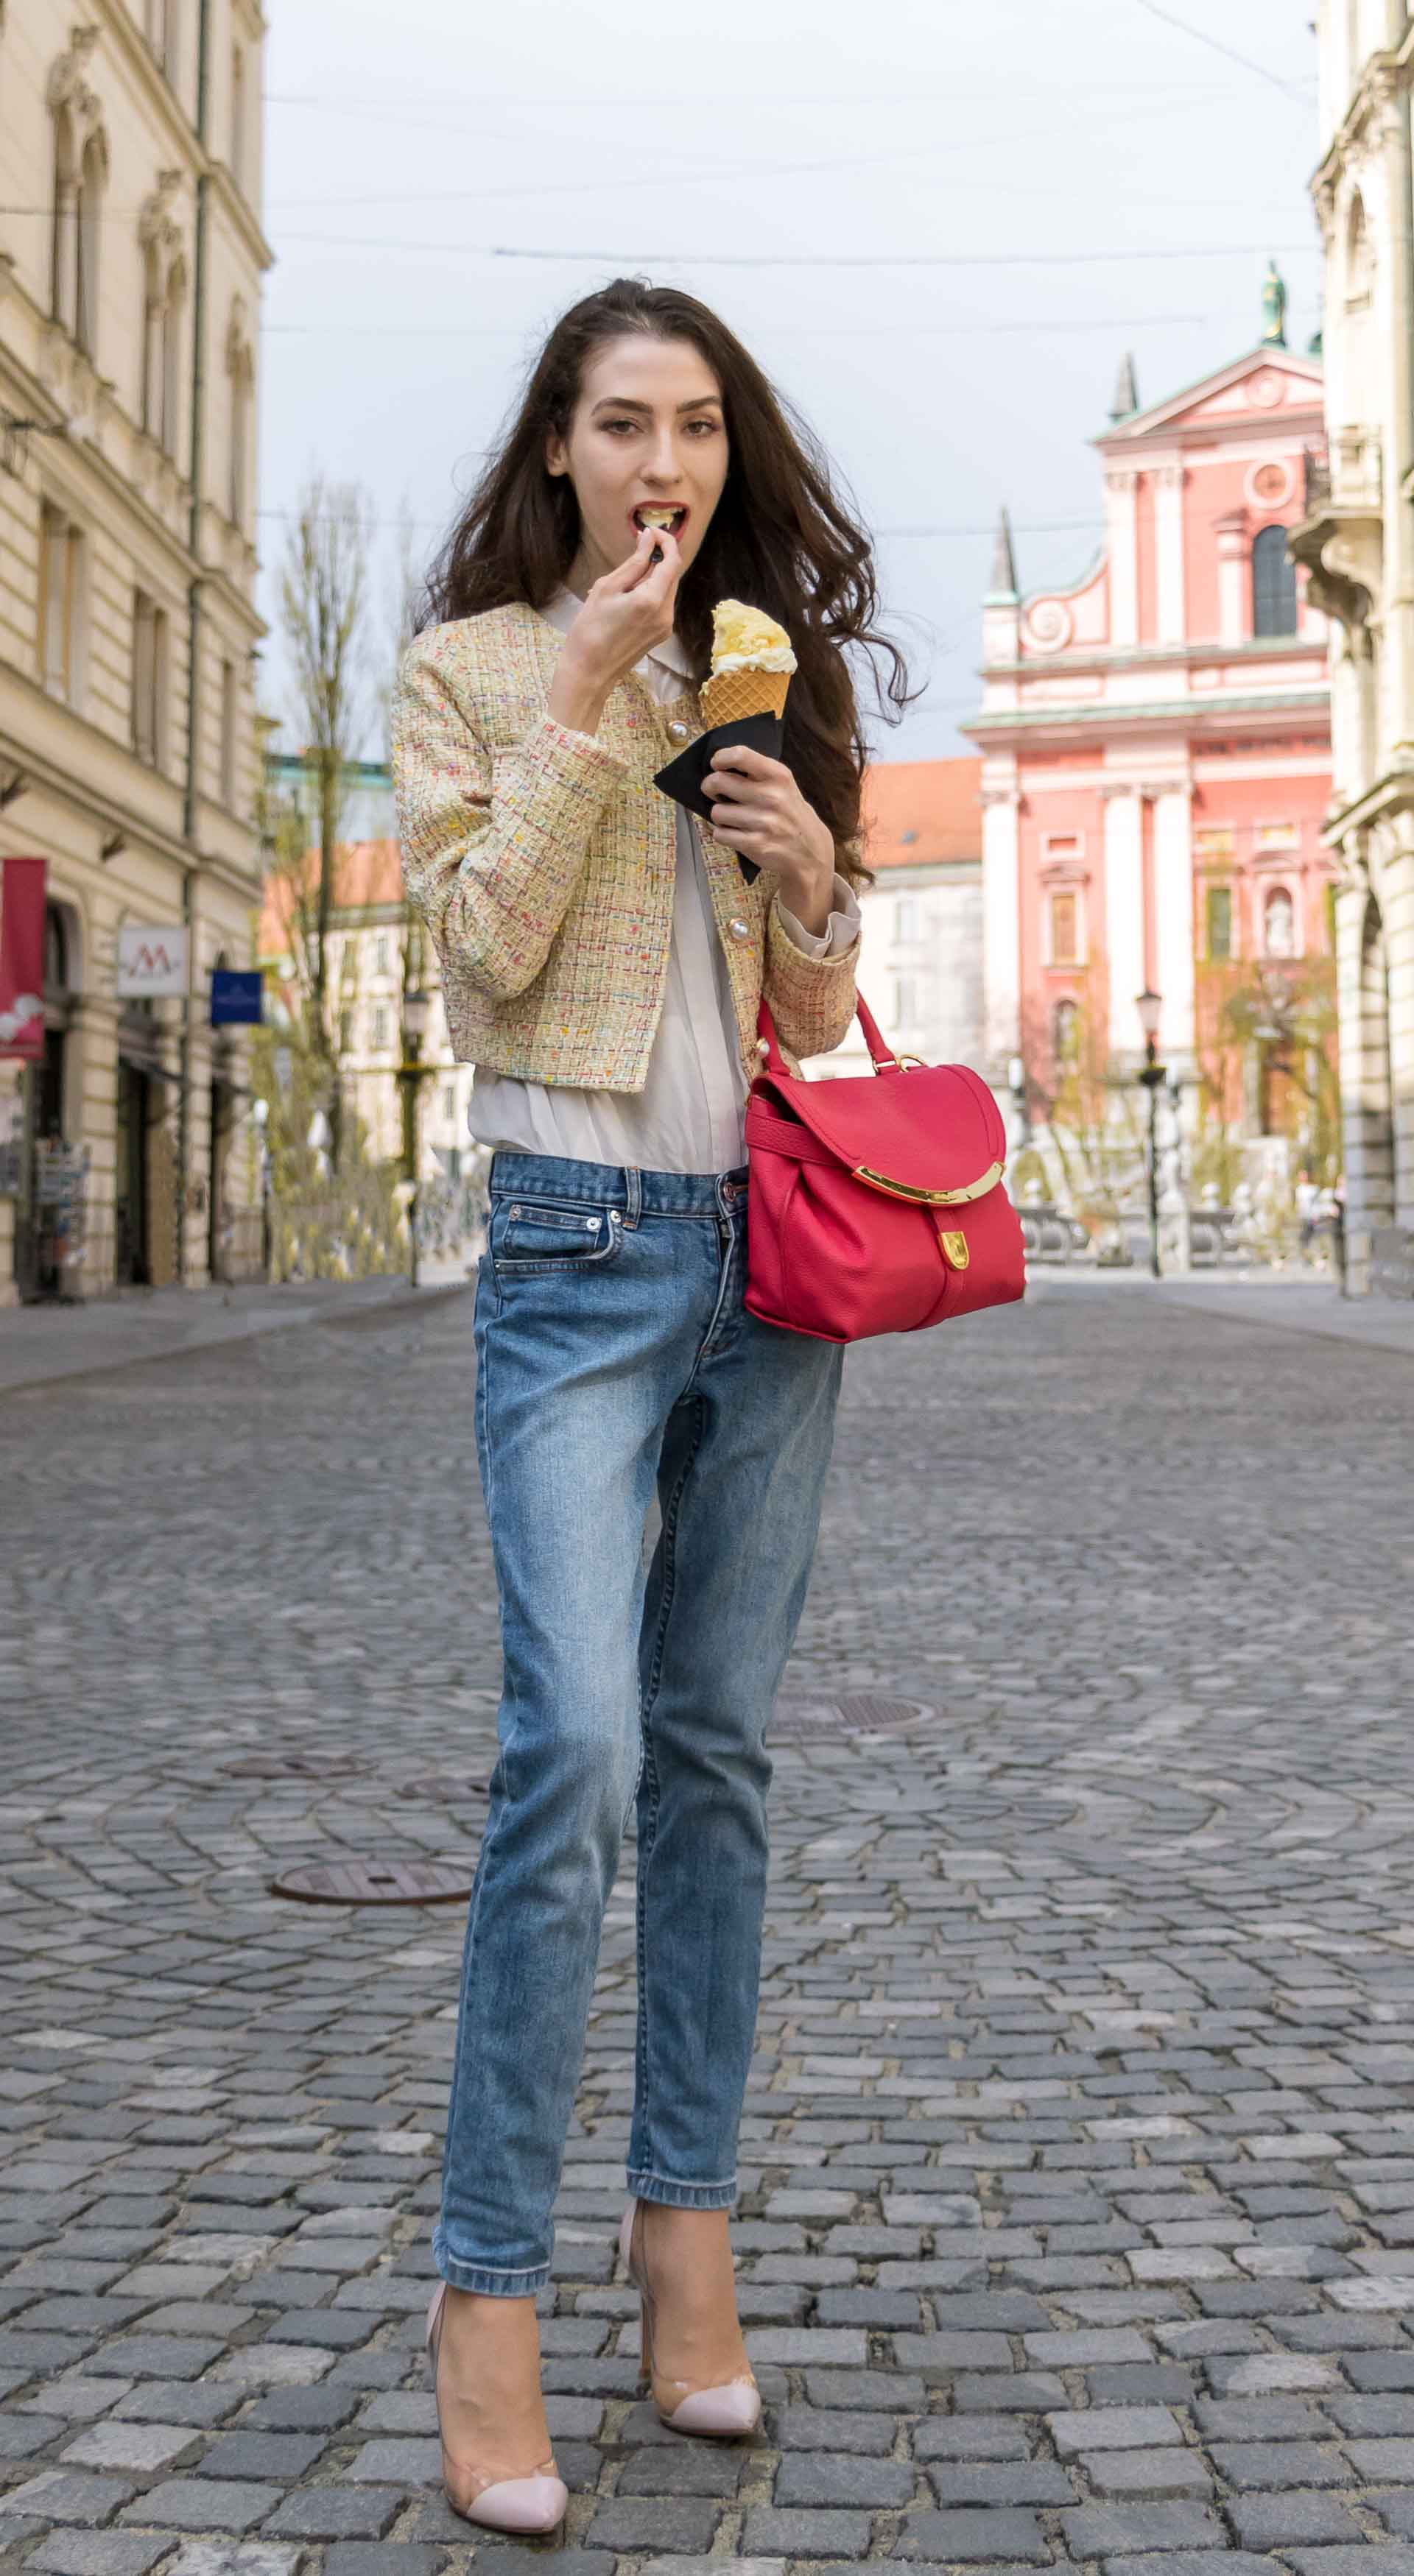 Veronika Lipar Fashion Blogger of Brunette from Wall Street wearing chic casual everyday spring outfit, the yellow tweed jacket from Storets, blue jeans from A.P.C., blush Gianvito Rossi plexi pumps, pink top handle bag and organza white shirt this spring